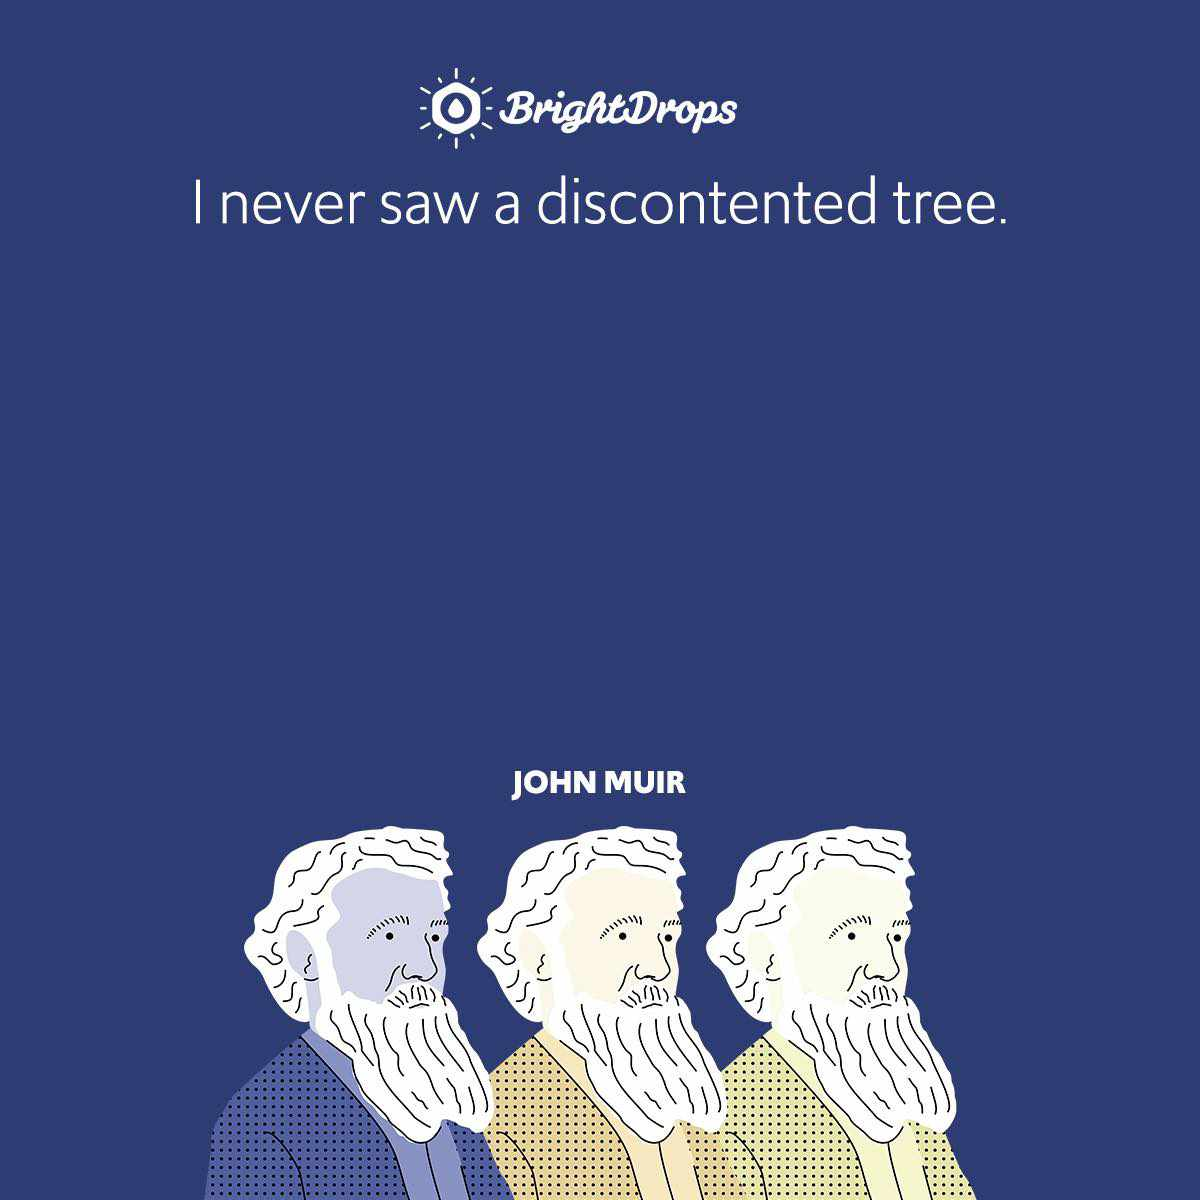 I never saw a discontented tree.